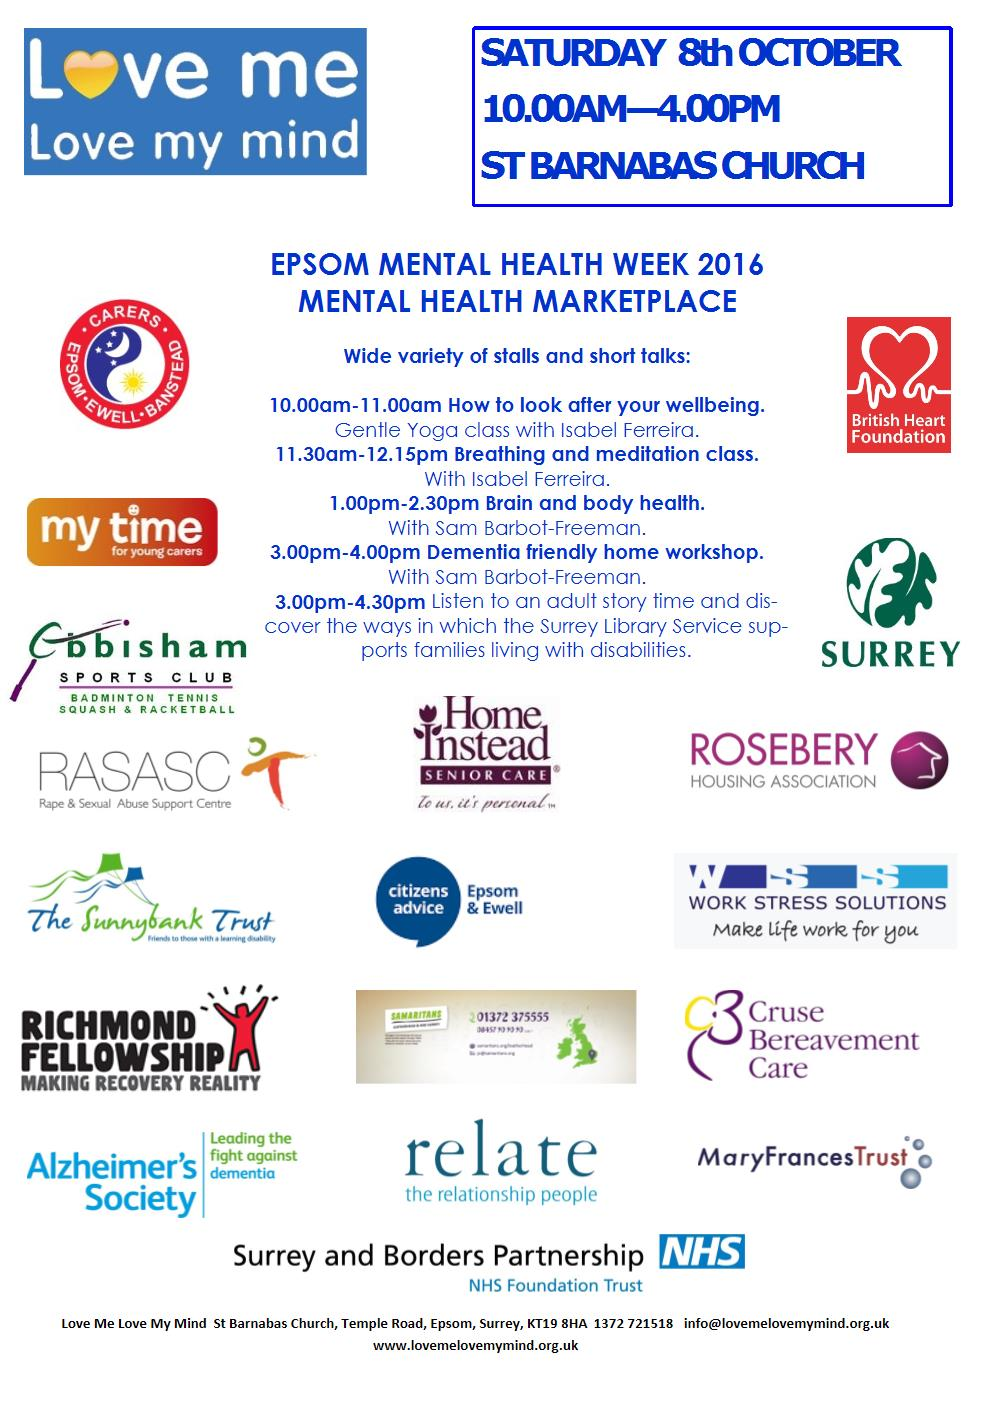 Mental Health Market Place 2016 poster